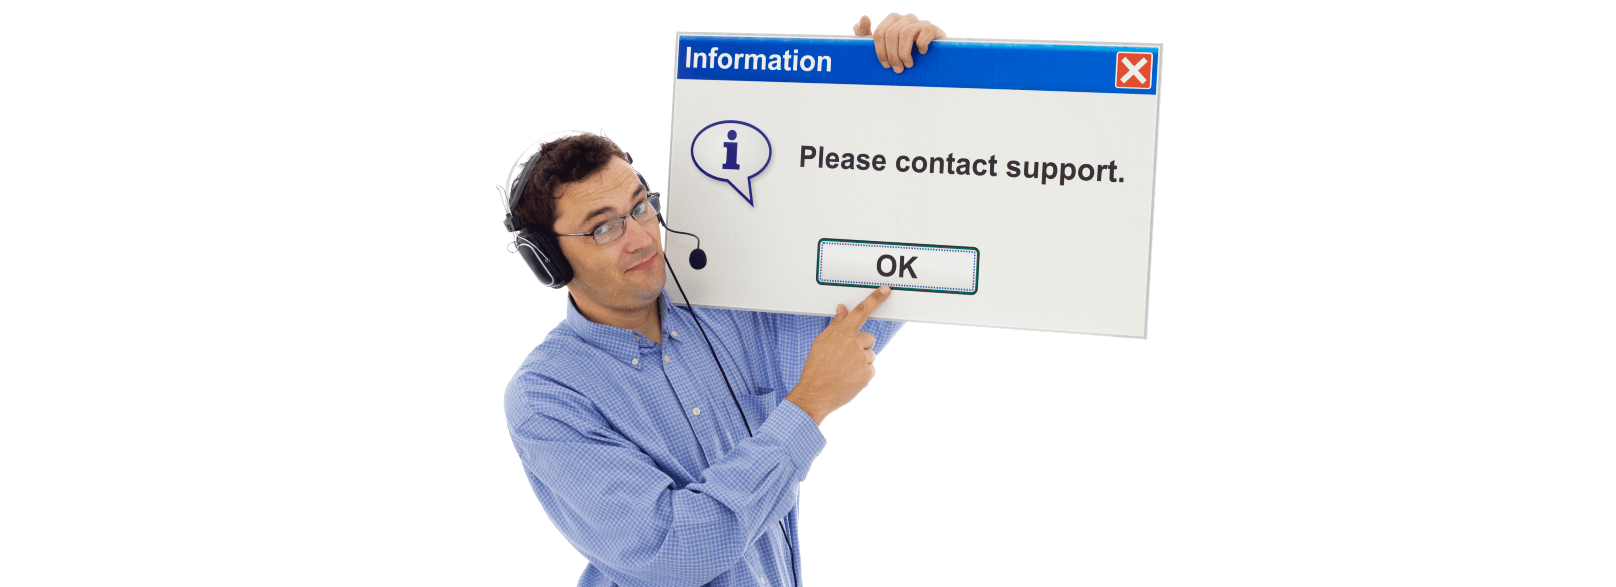 contact-support.png